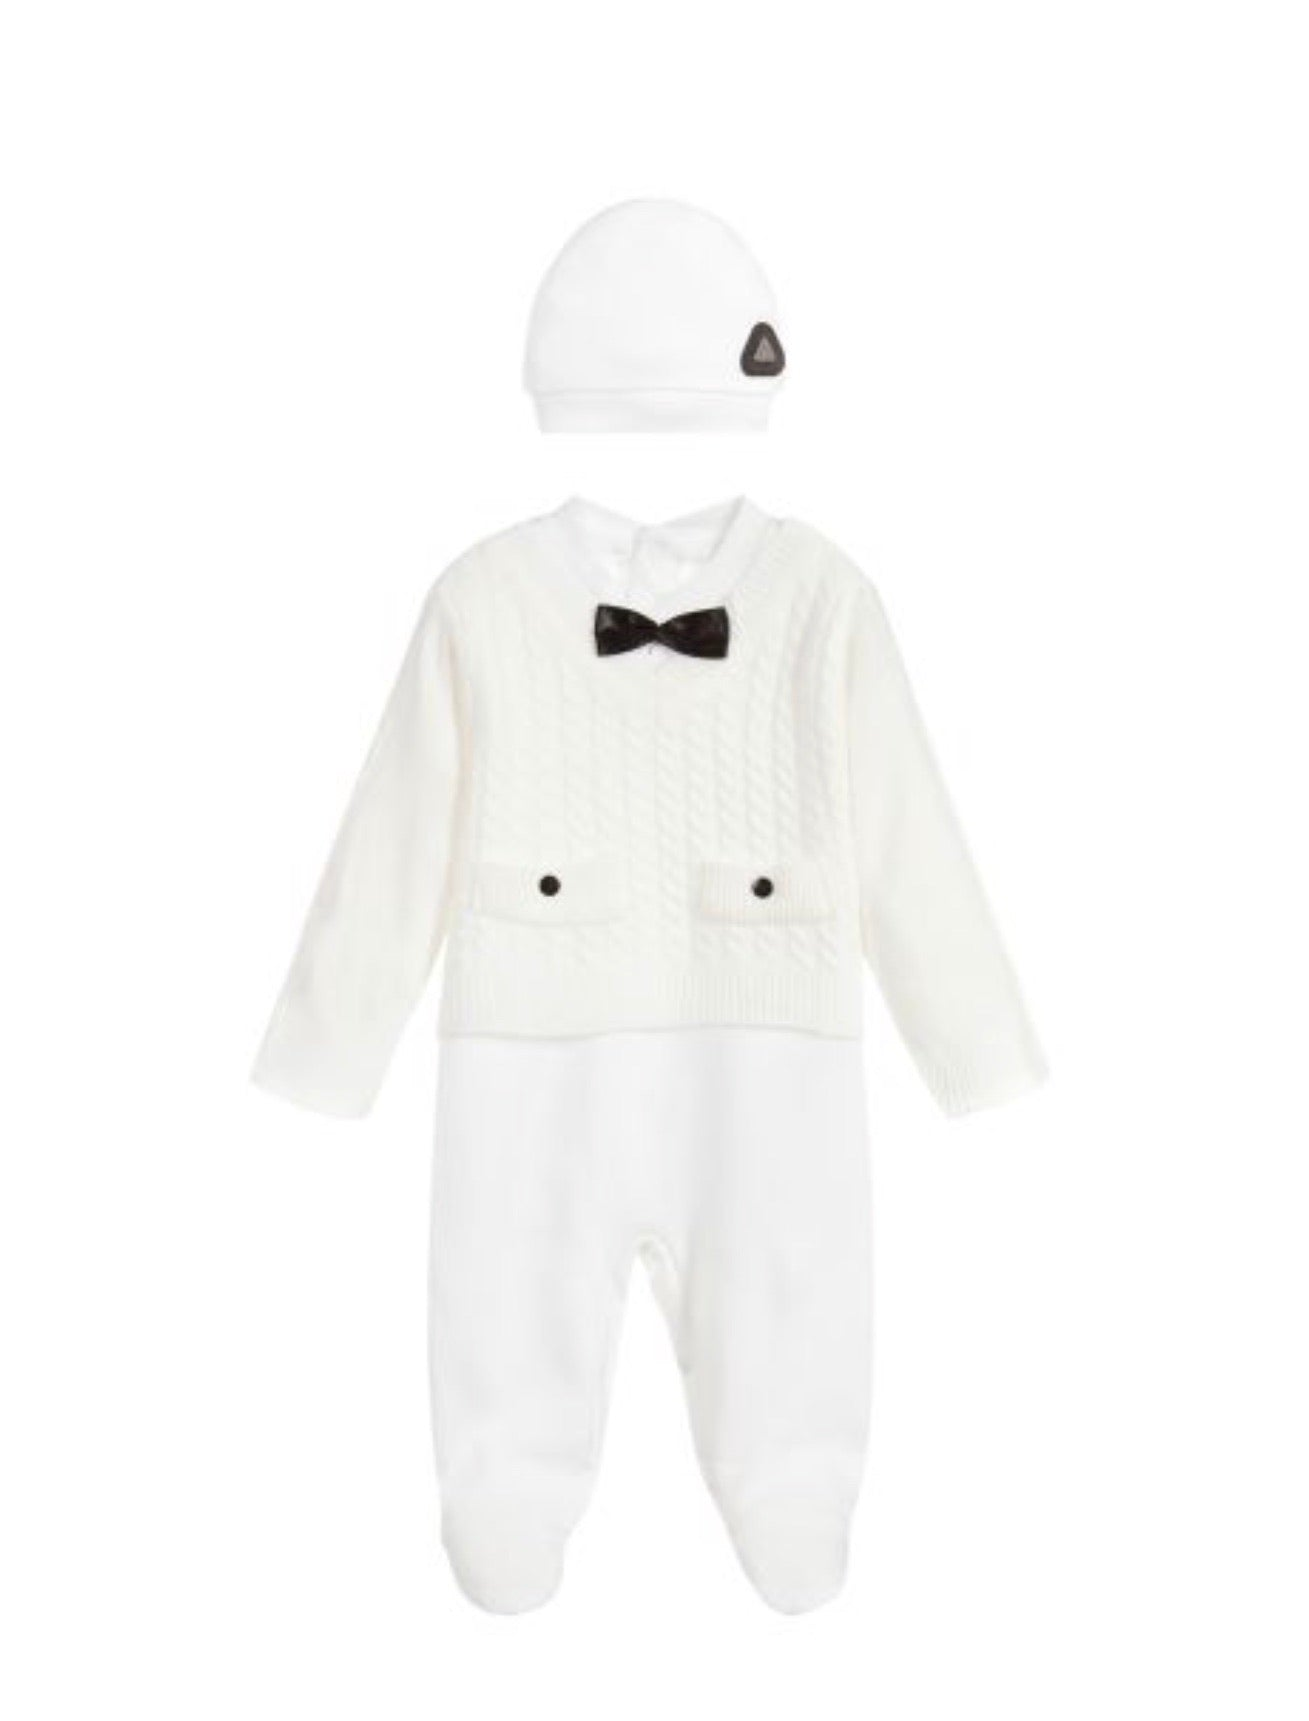 Caramelo Kids Baby Knitted All in One Outfit - Cream